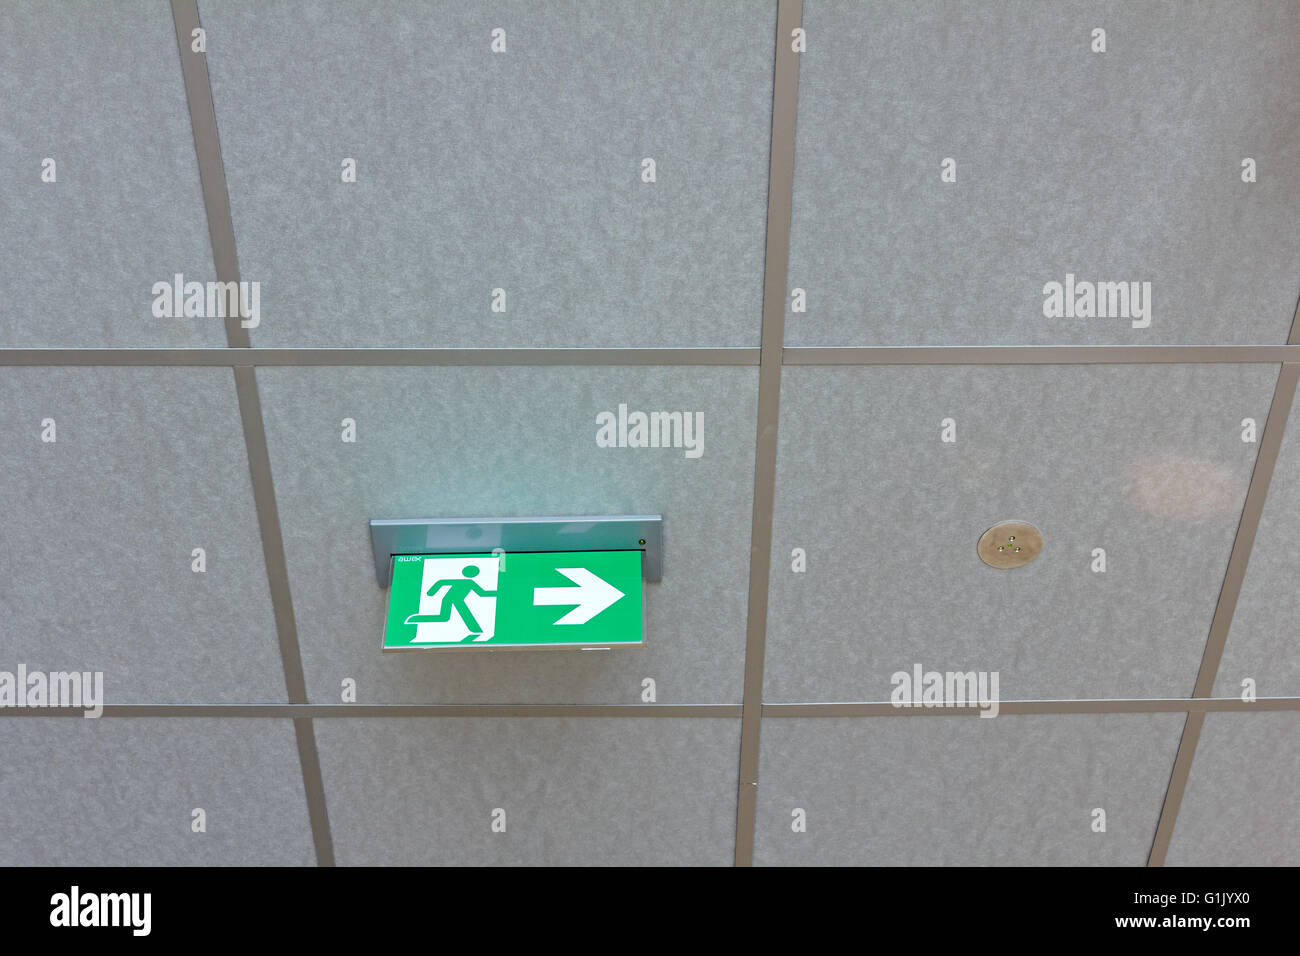 Standard international symbol safe exit sign is hanging from the ceiling. - Stock Image